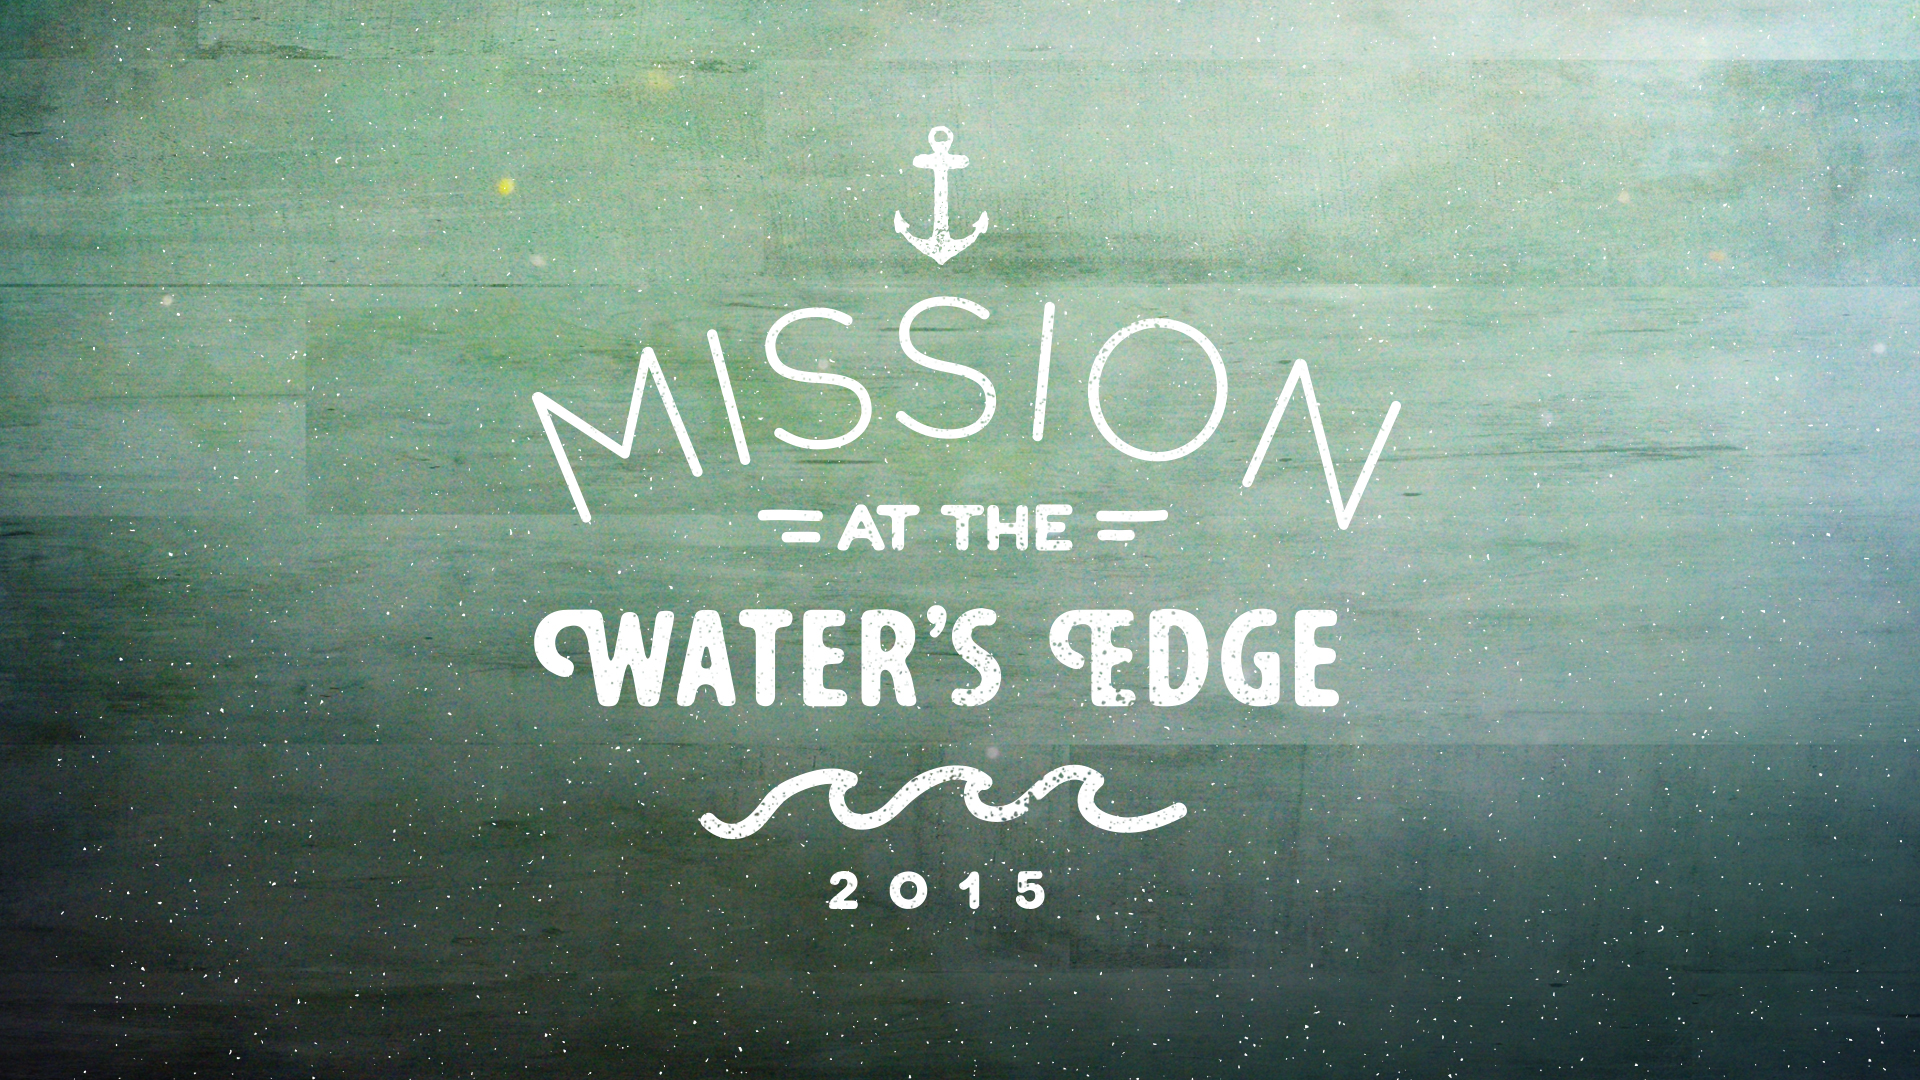 Mission at the Water's Edge